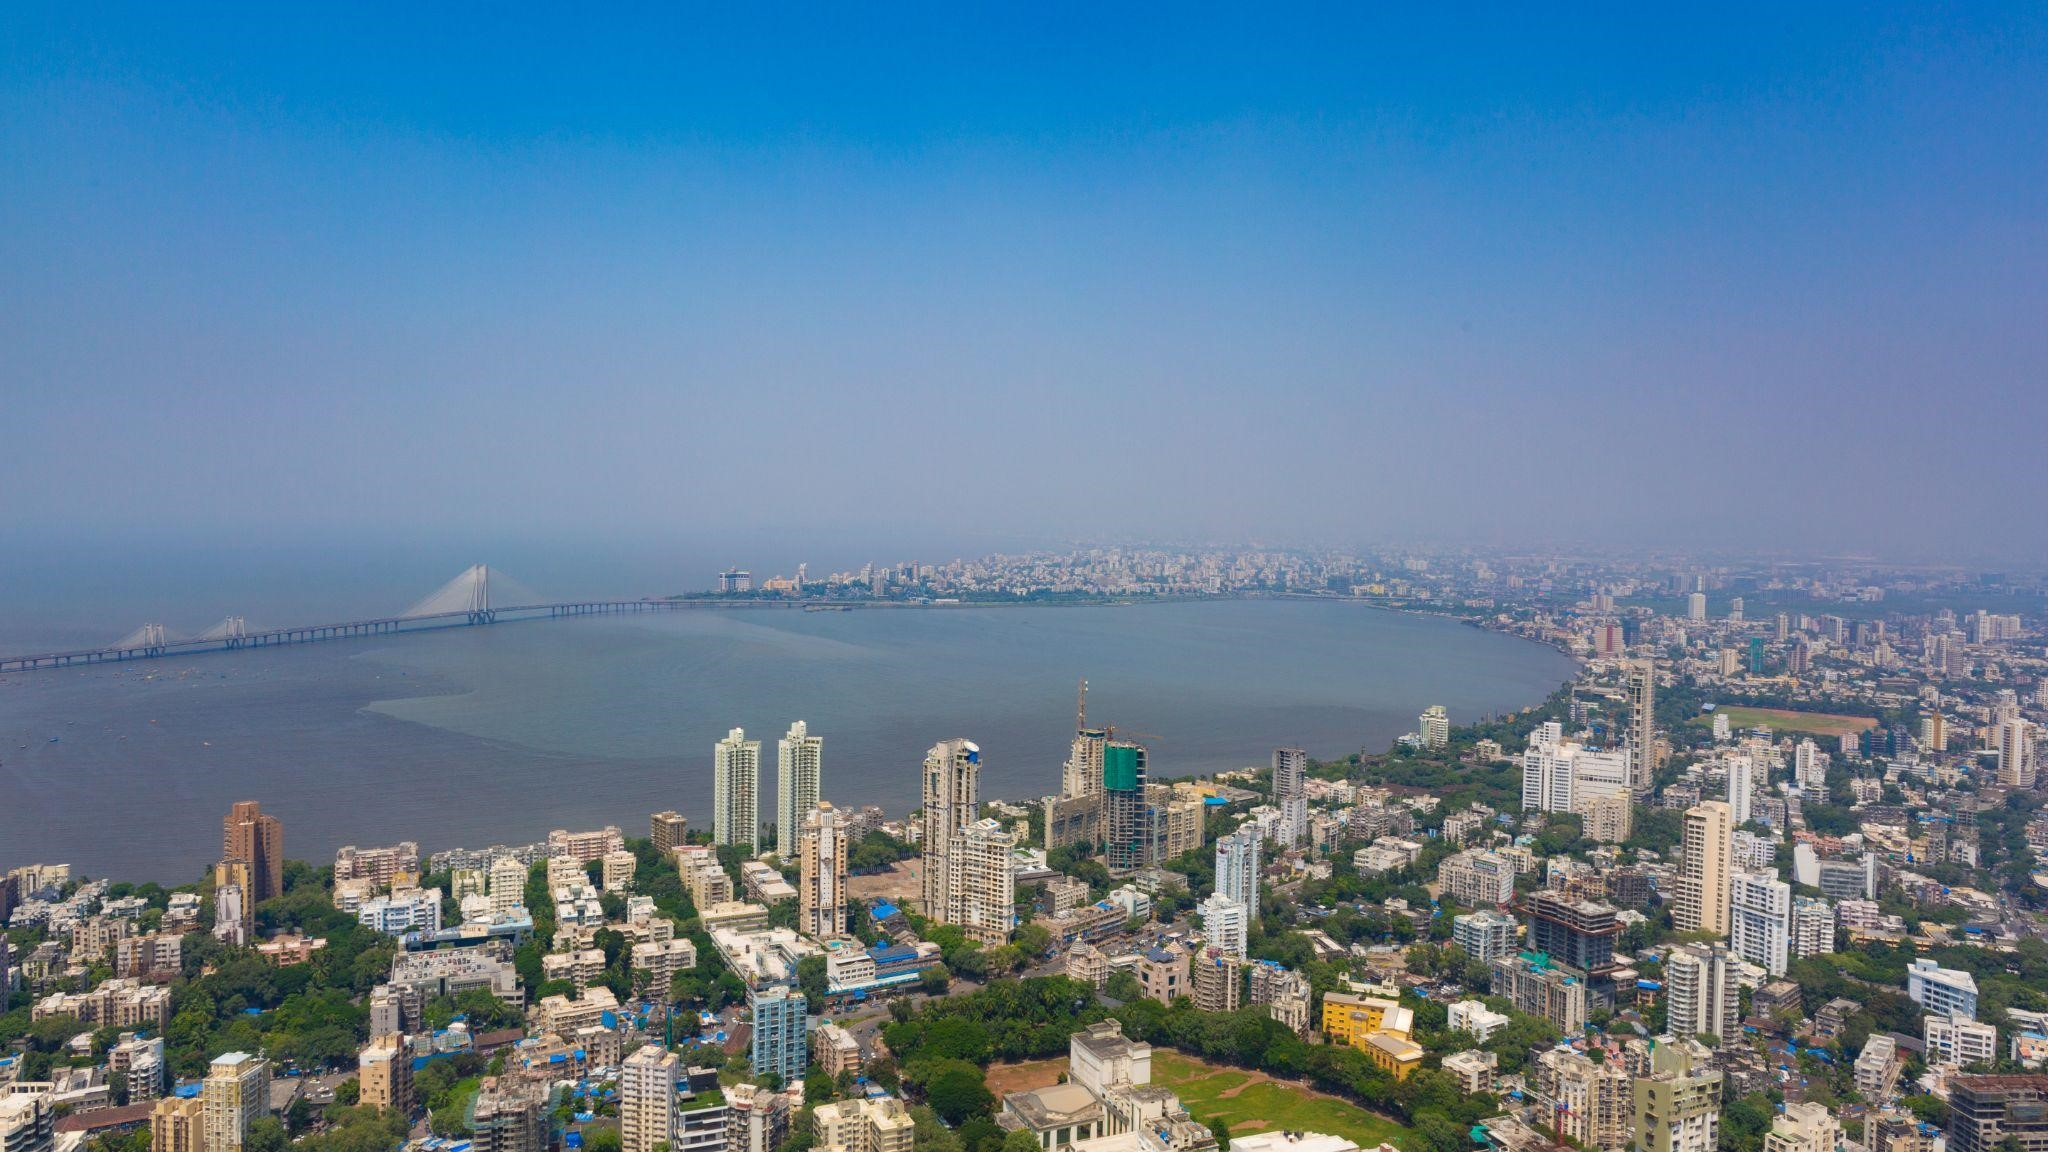 Thinking Of Buying Property In Mumbai? Here's What You Should Keep In Mind